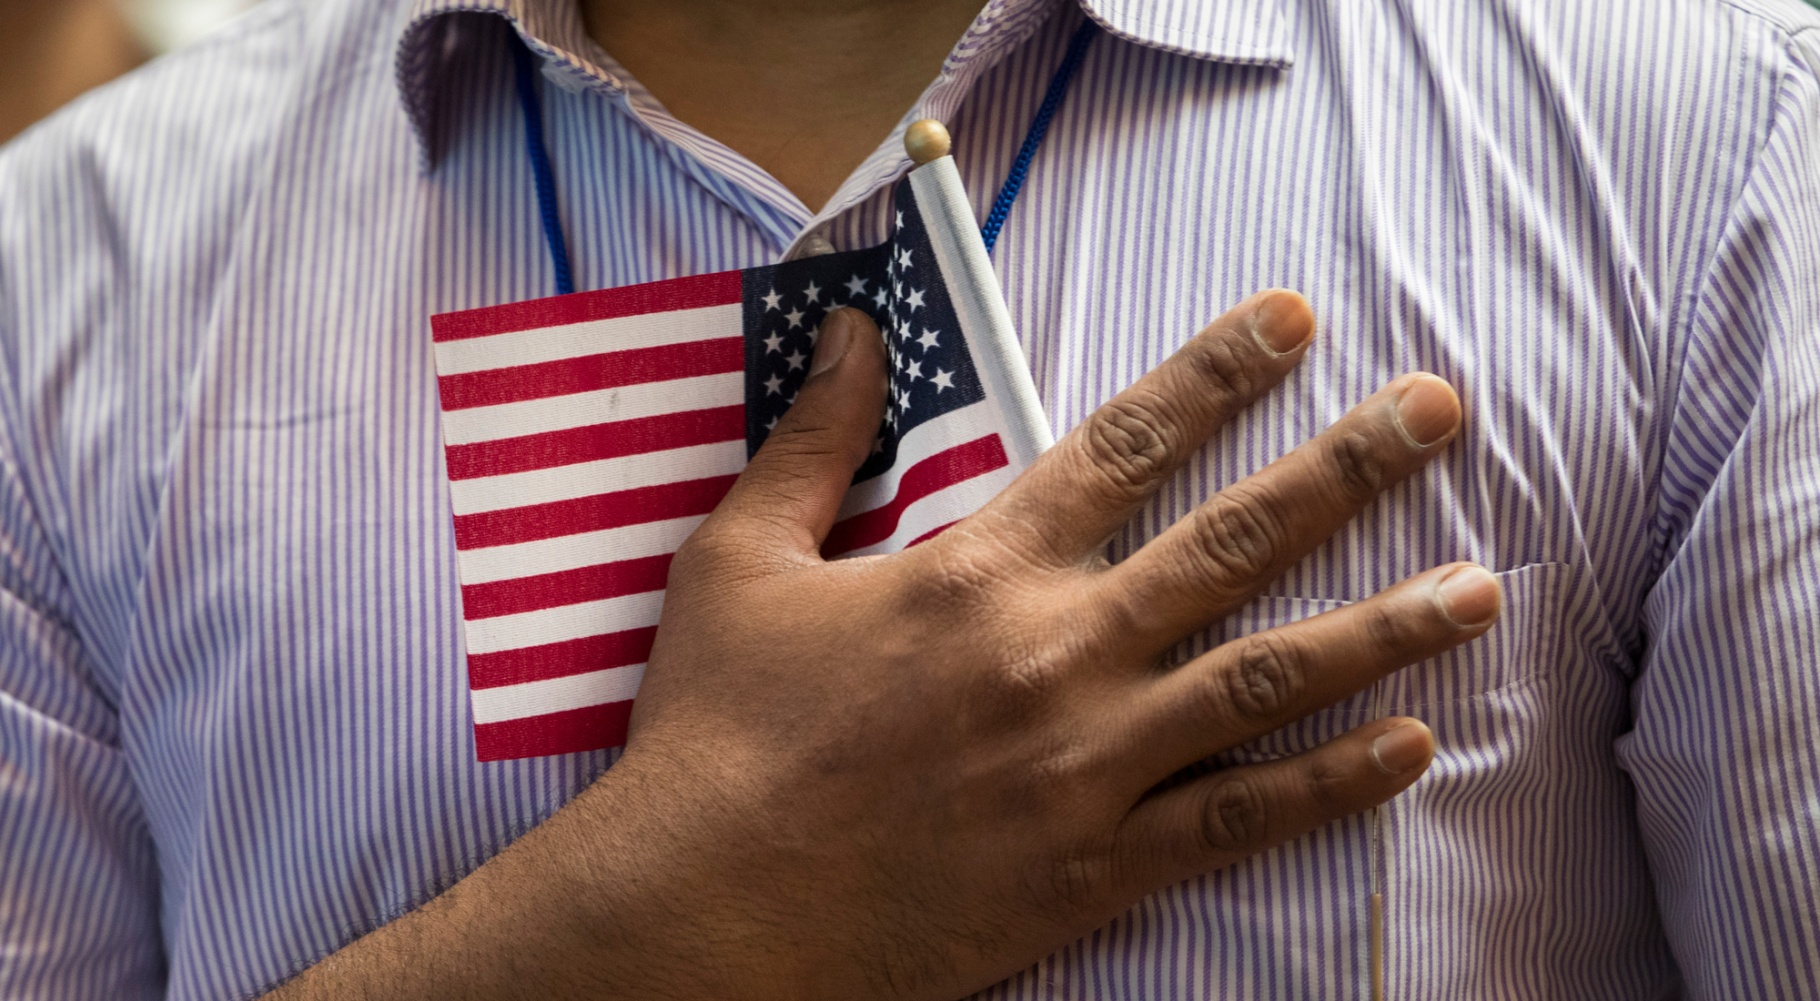 Immigrants From Over 50 Countries Become U.S. Citizens At The New York Public Library